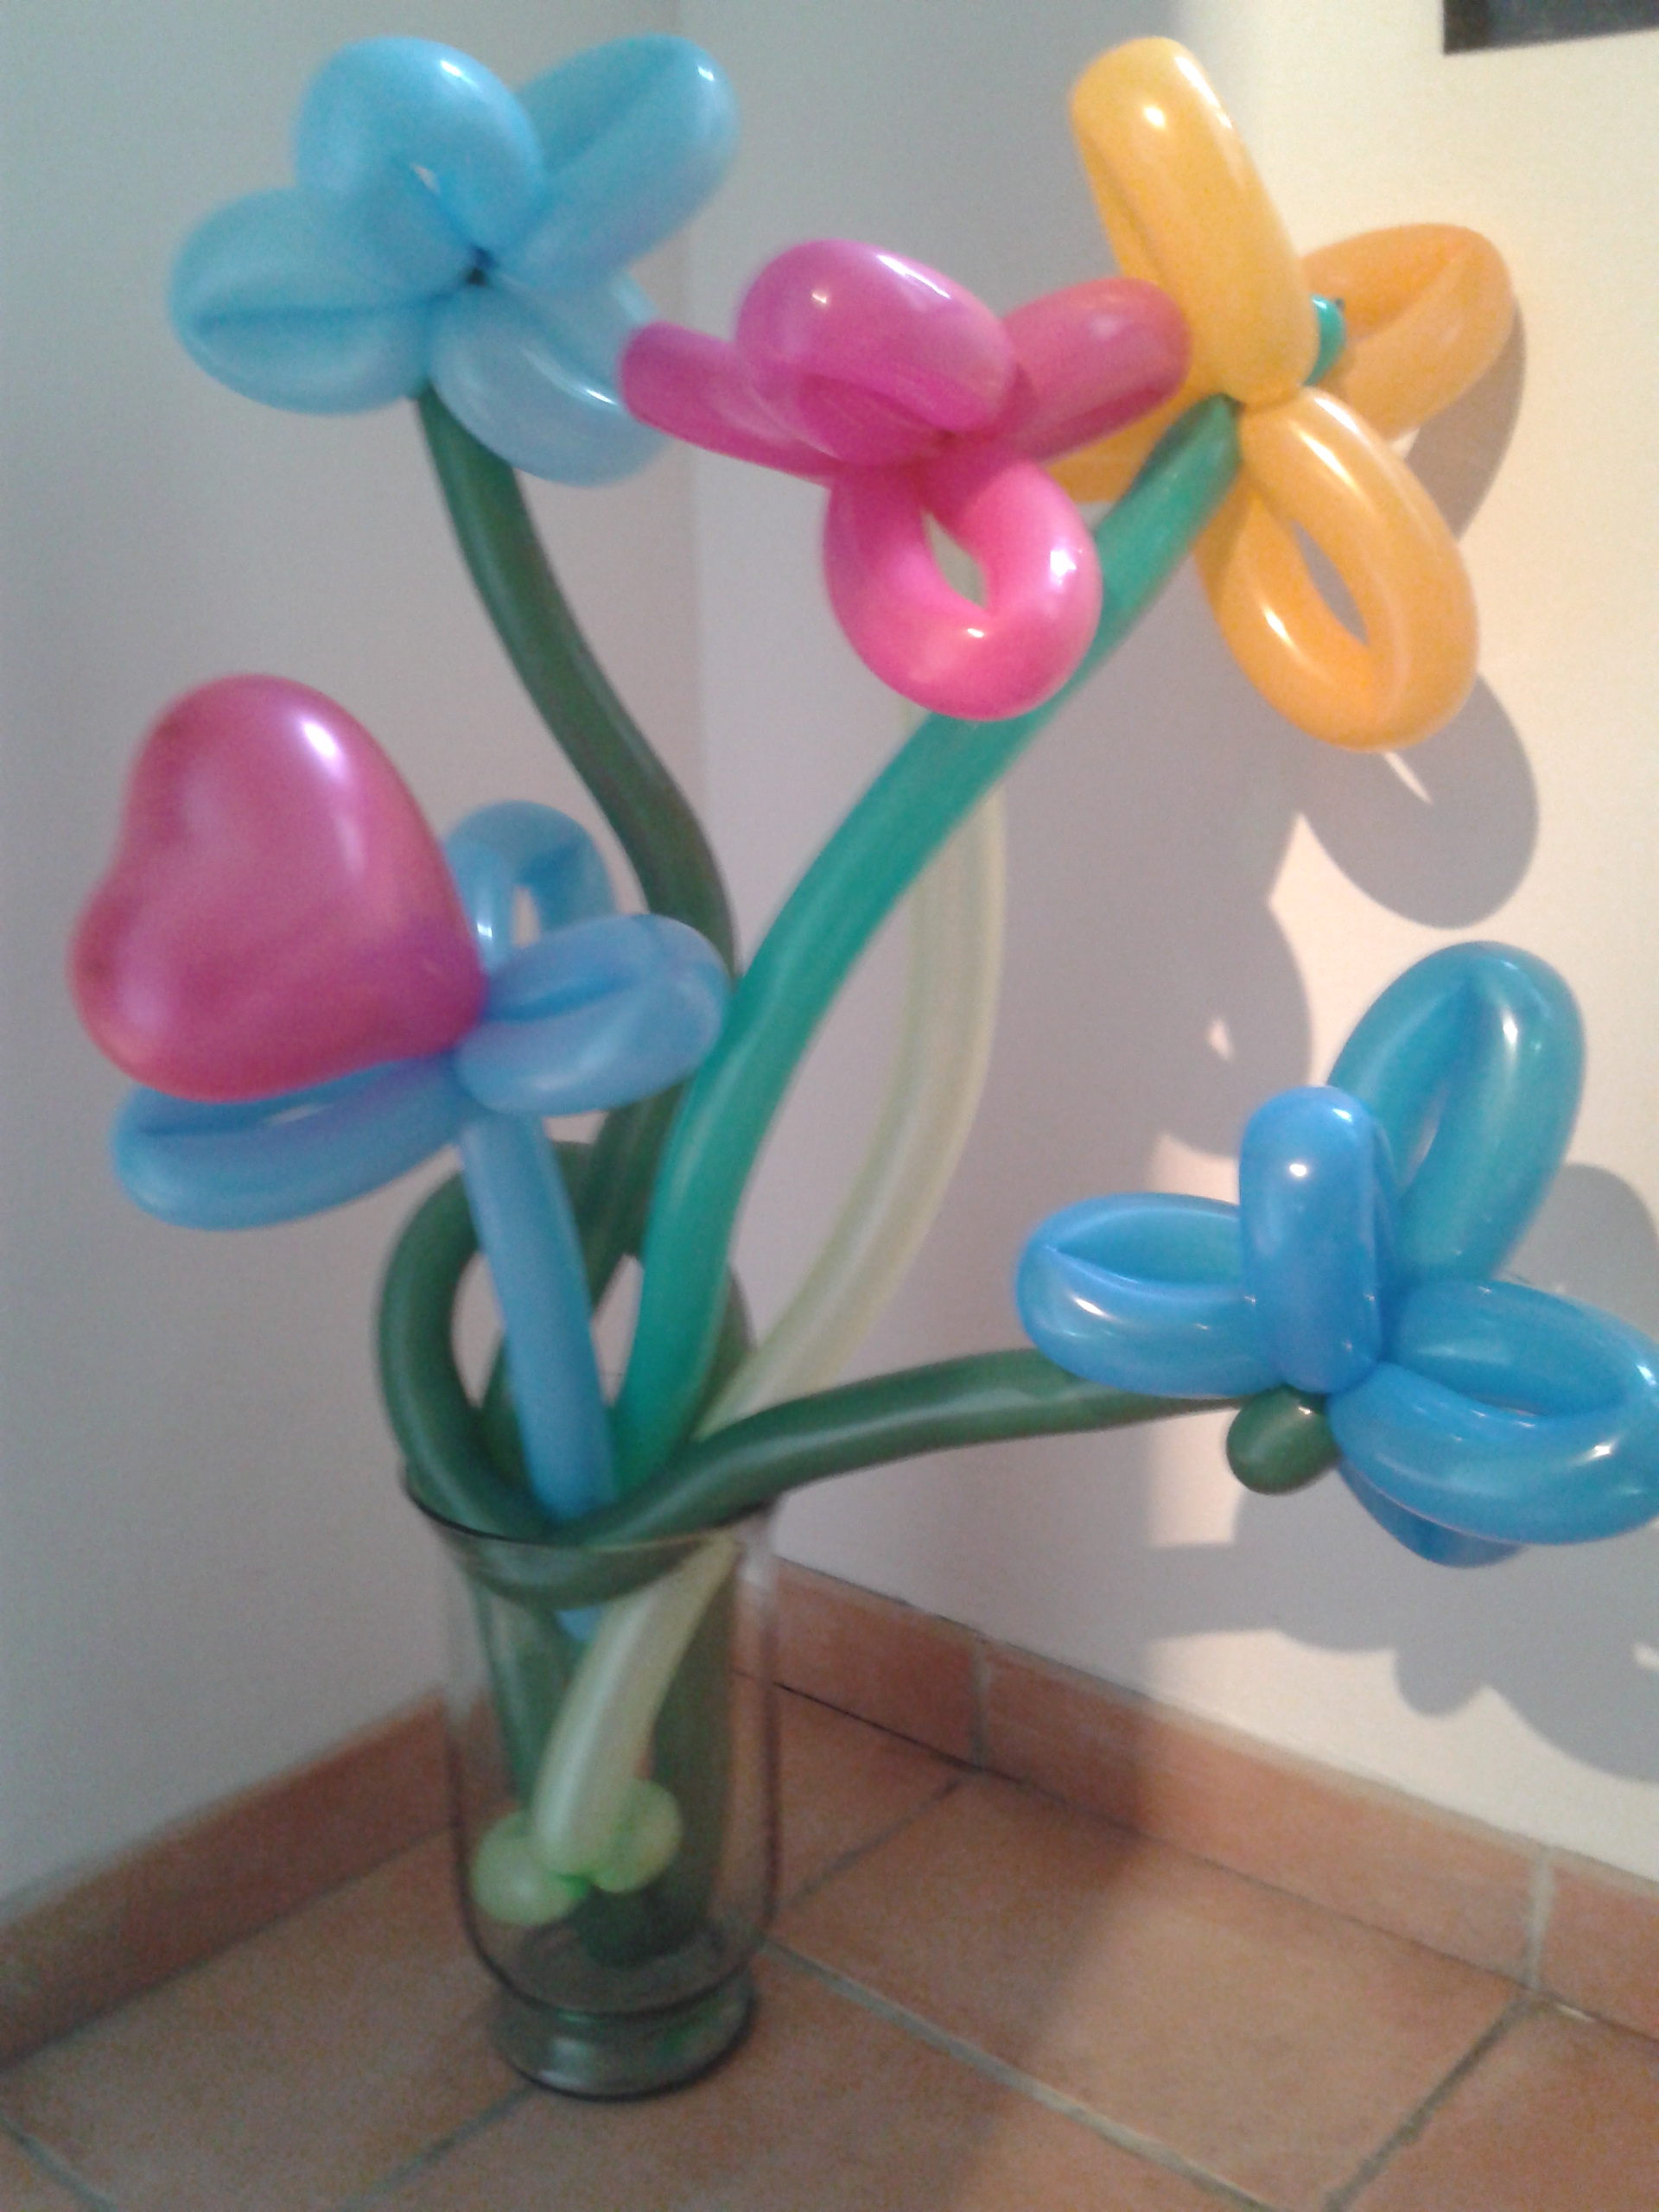 Dyno le clown sculpture de ballons bouquet de fleurs